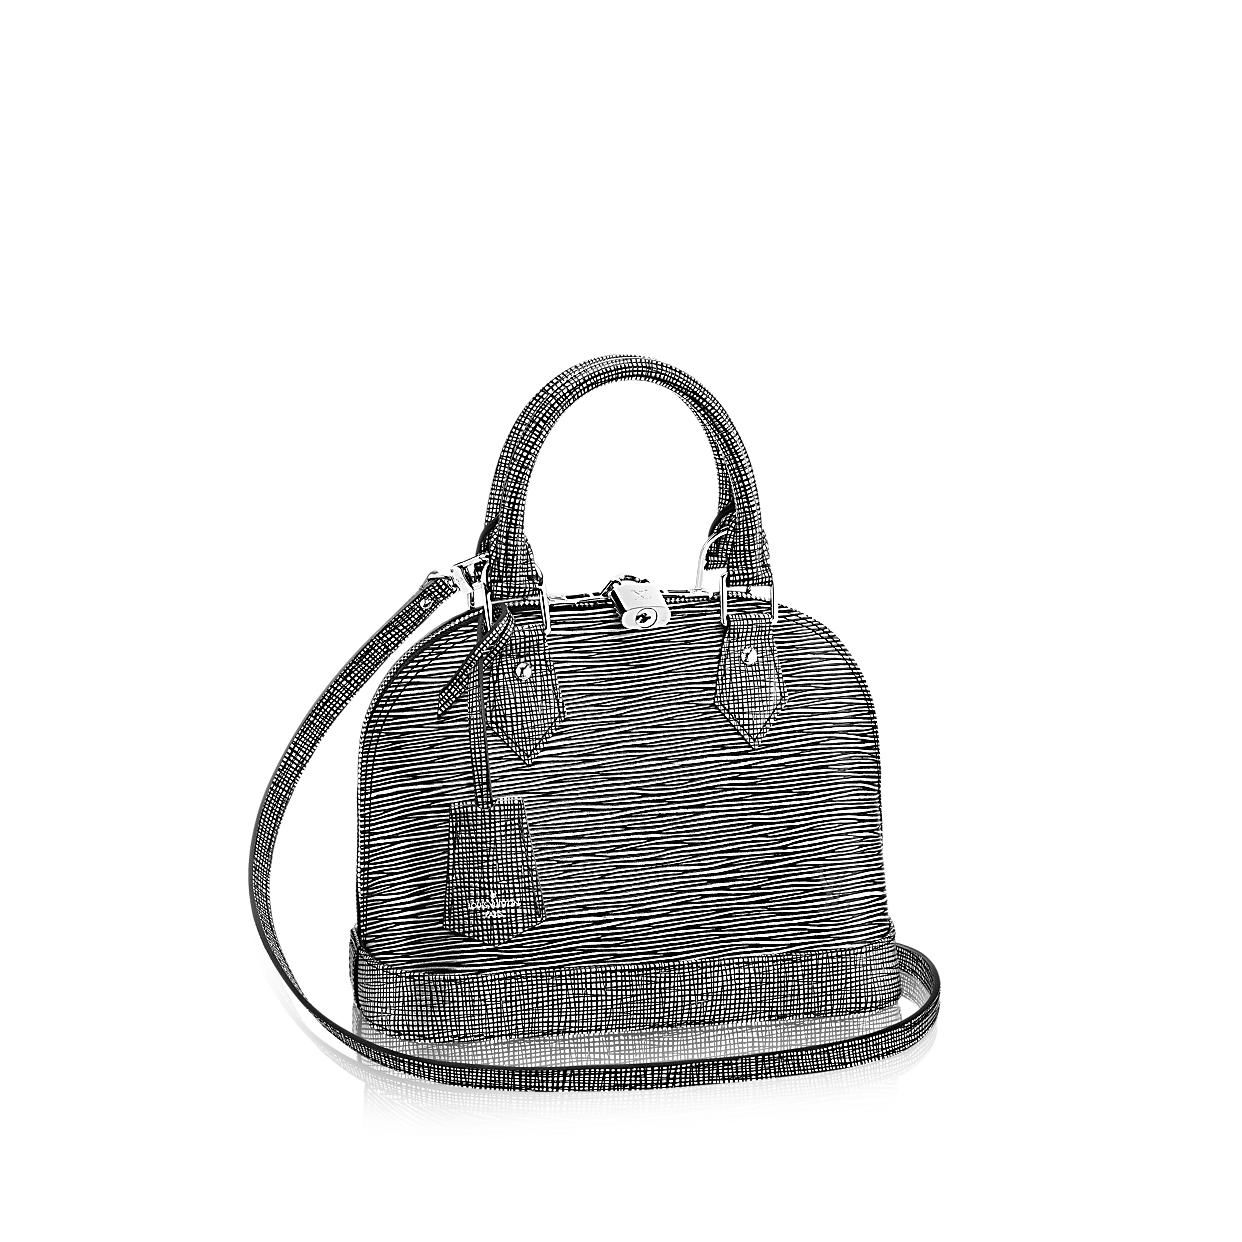 Alma BB Epi Leather in WOMEN's HANDBAGS collections by Louis Vuitton